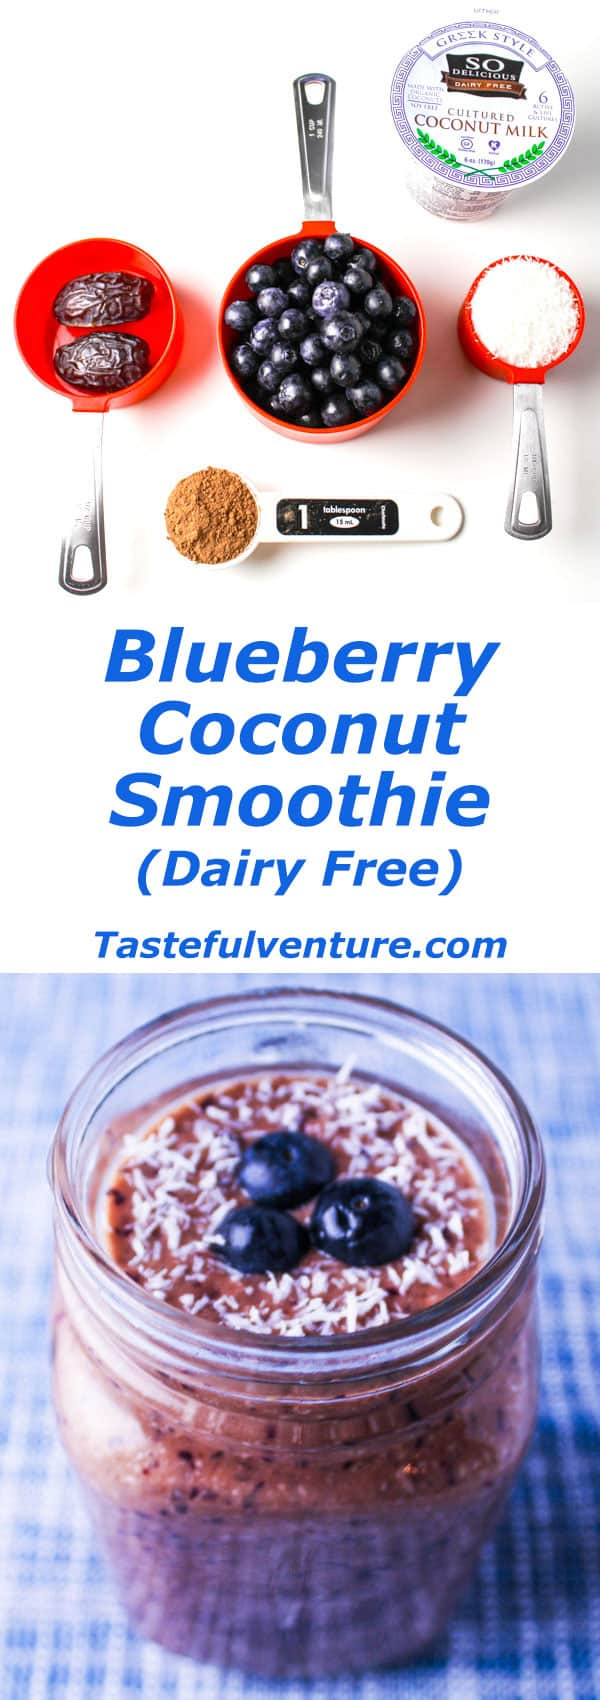 This Blueberry Coconut Smoothie is Dairy Free! We used Coconut Milk, Coconut Milk Yogurt, shredded Coconut, Dates, Raw Cacao, and Blueberries. | Tastefulventure.com